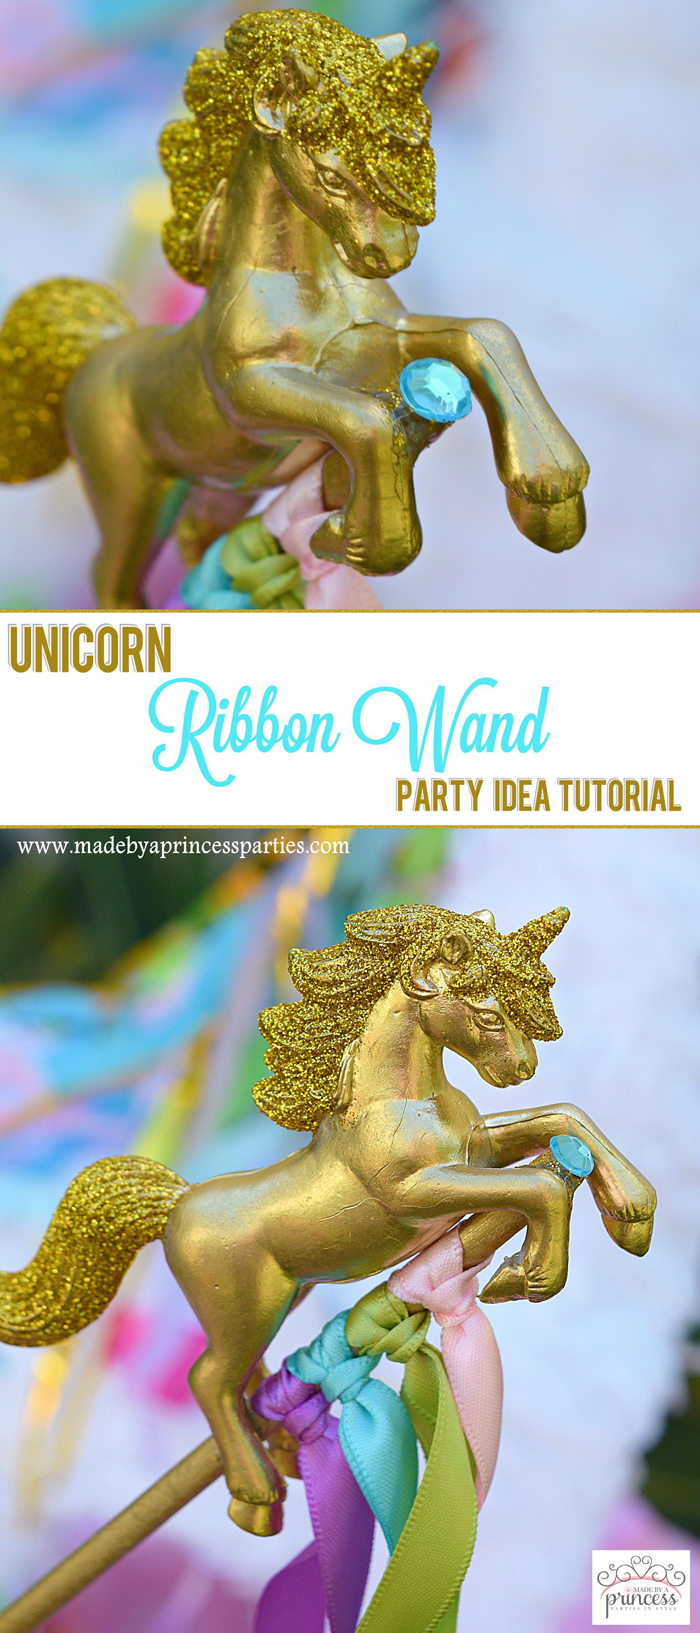 Unicorn Ribbon Wand Party Idea Tutorial pin it